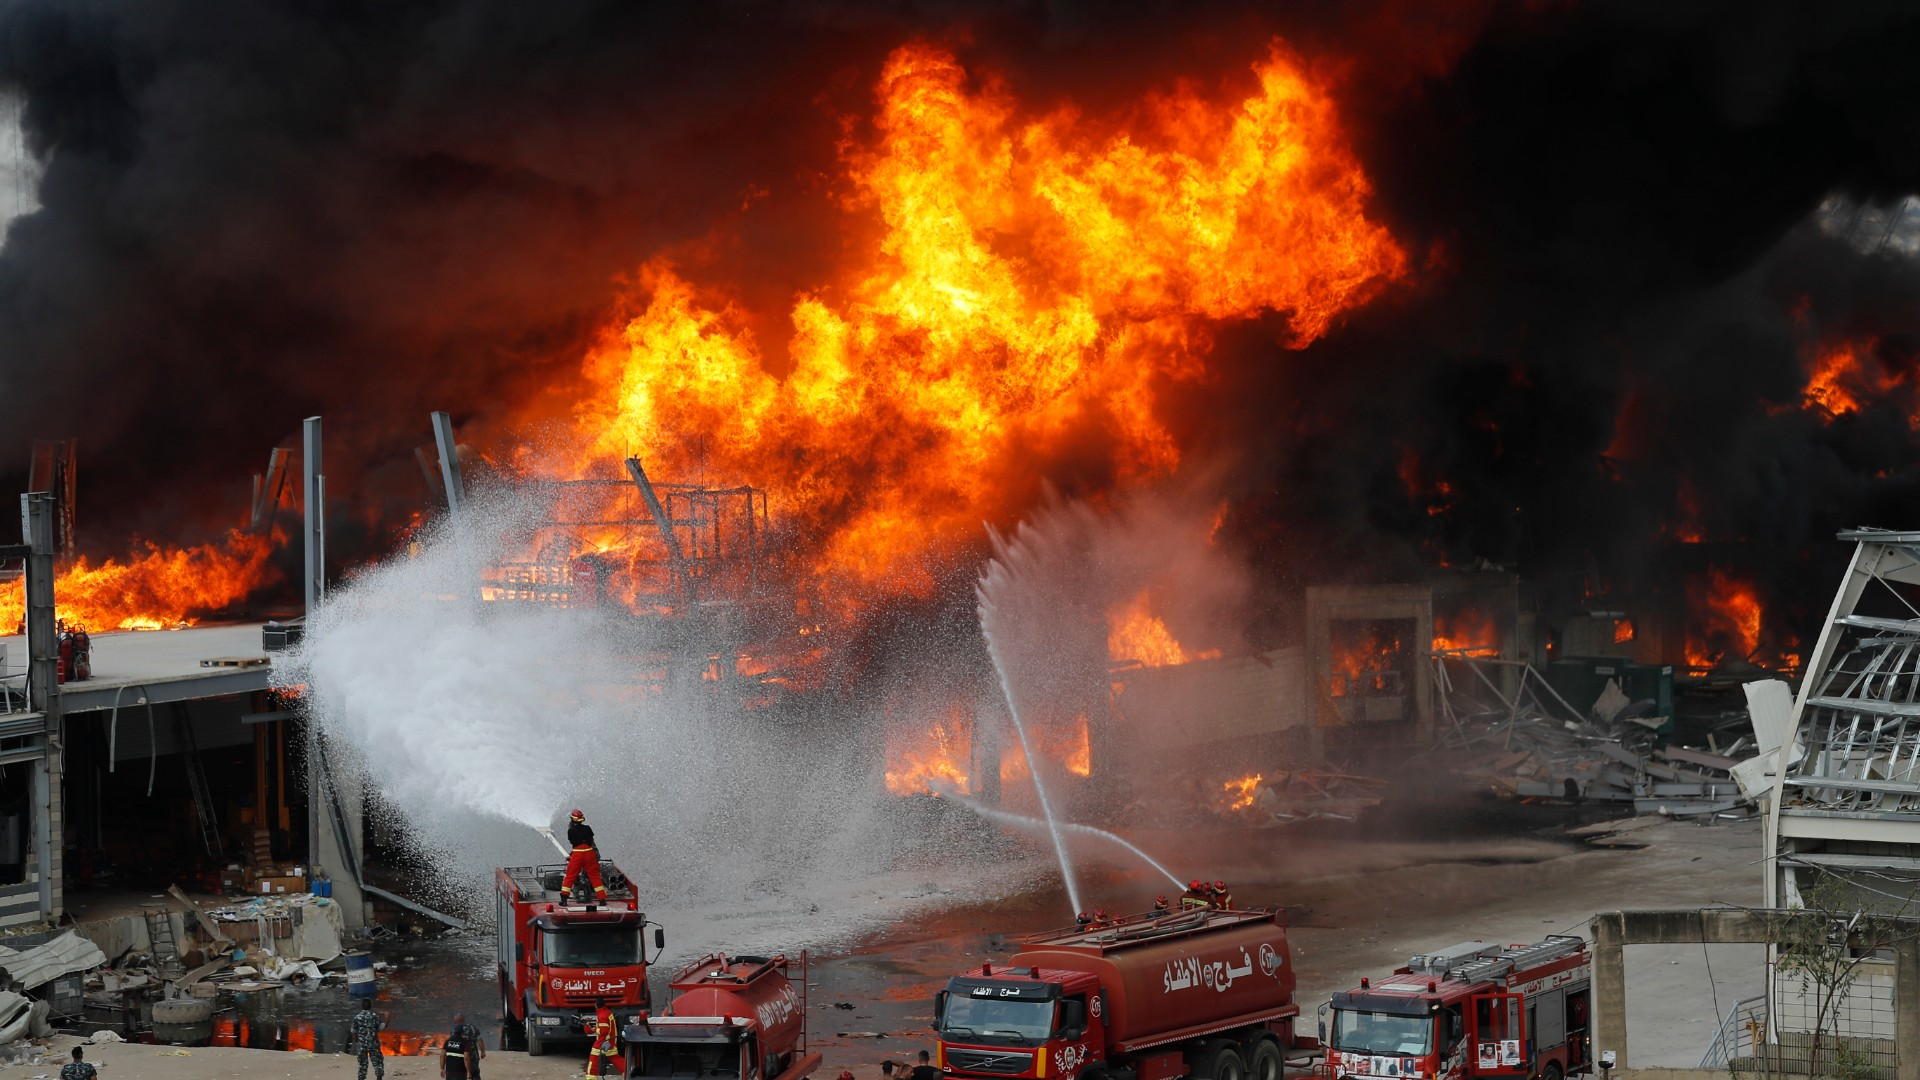 Fire burns in the port in Beirut, Lebanon, Thursday, Sept. 10. 2020. A huge fire broke out Thursday at the Port of Beirut, triggering panic among residents traumatized by last month's massive explosion that killed and injured thousands of people. (AP Photo/Hussein Malla)